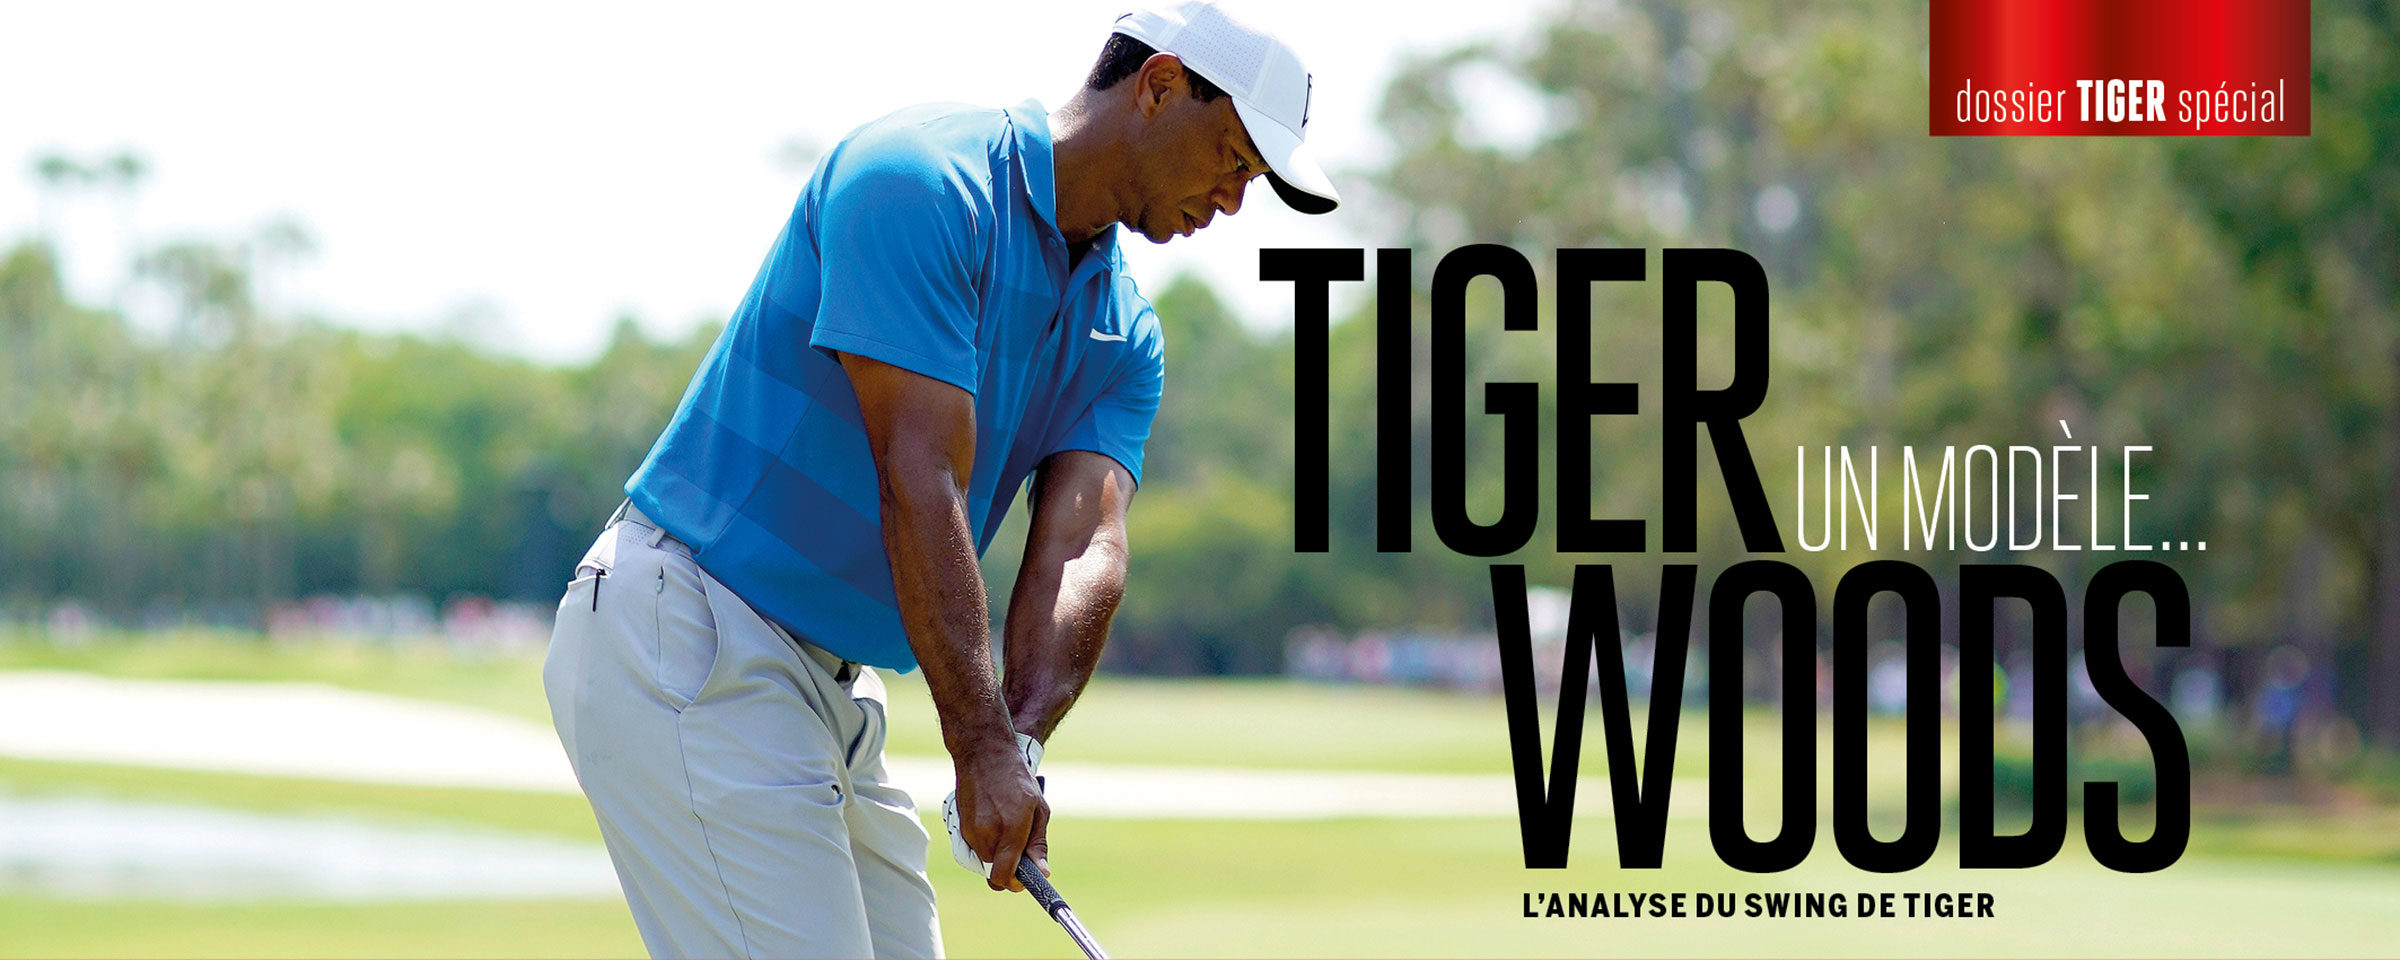 L'analyse du swing de Tiger Woods